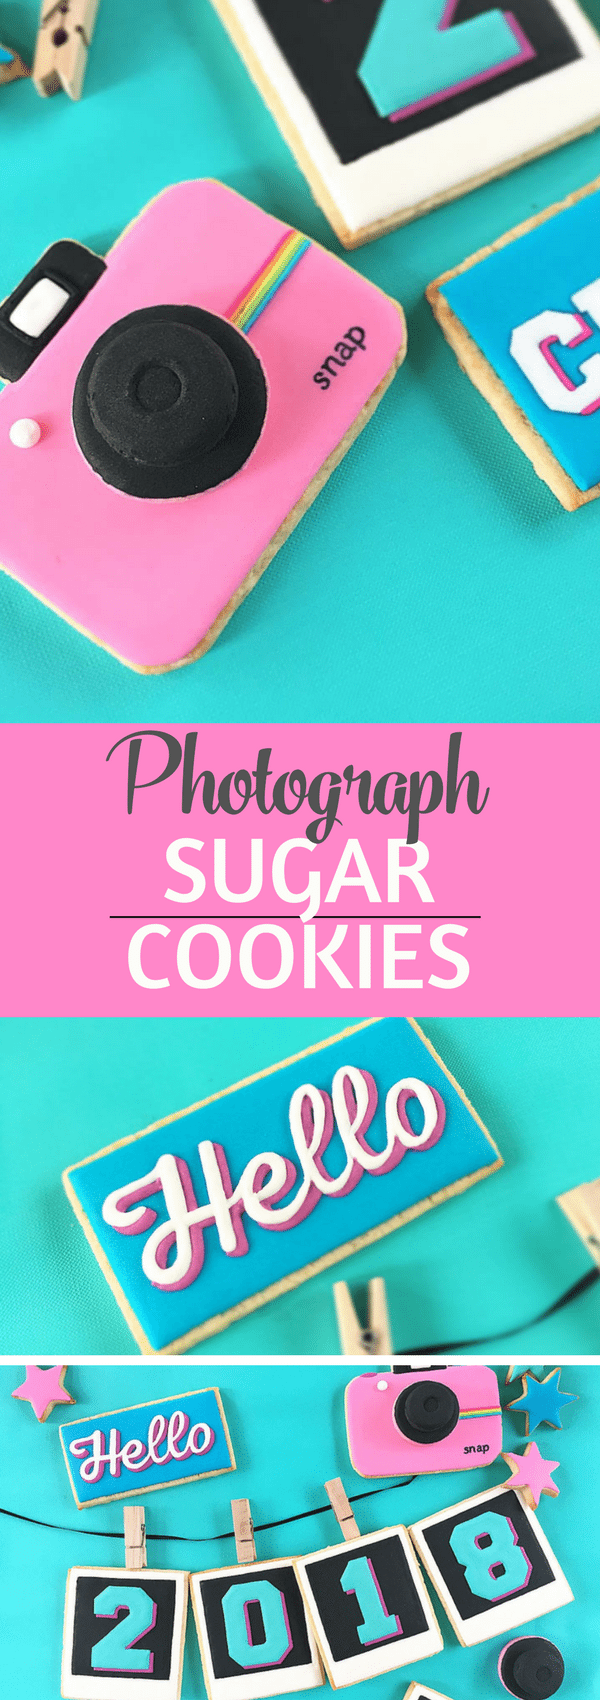 These photograph sugar cookies are good enough to click, snap and share.  #sugarcookies Snap your polariod and share your selfies.